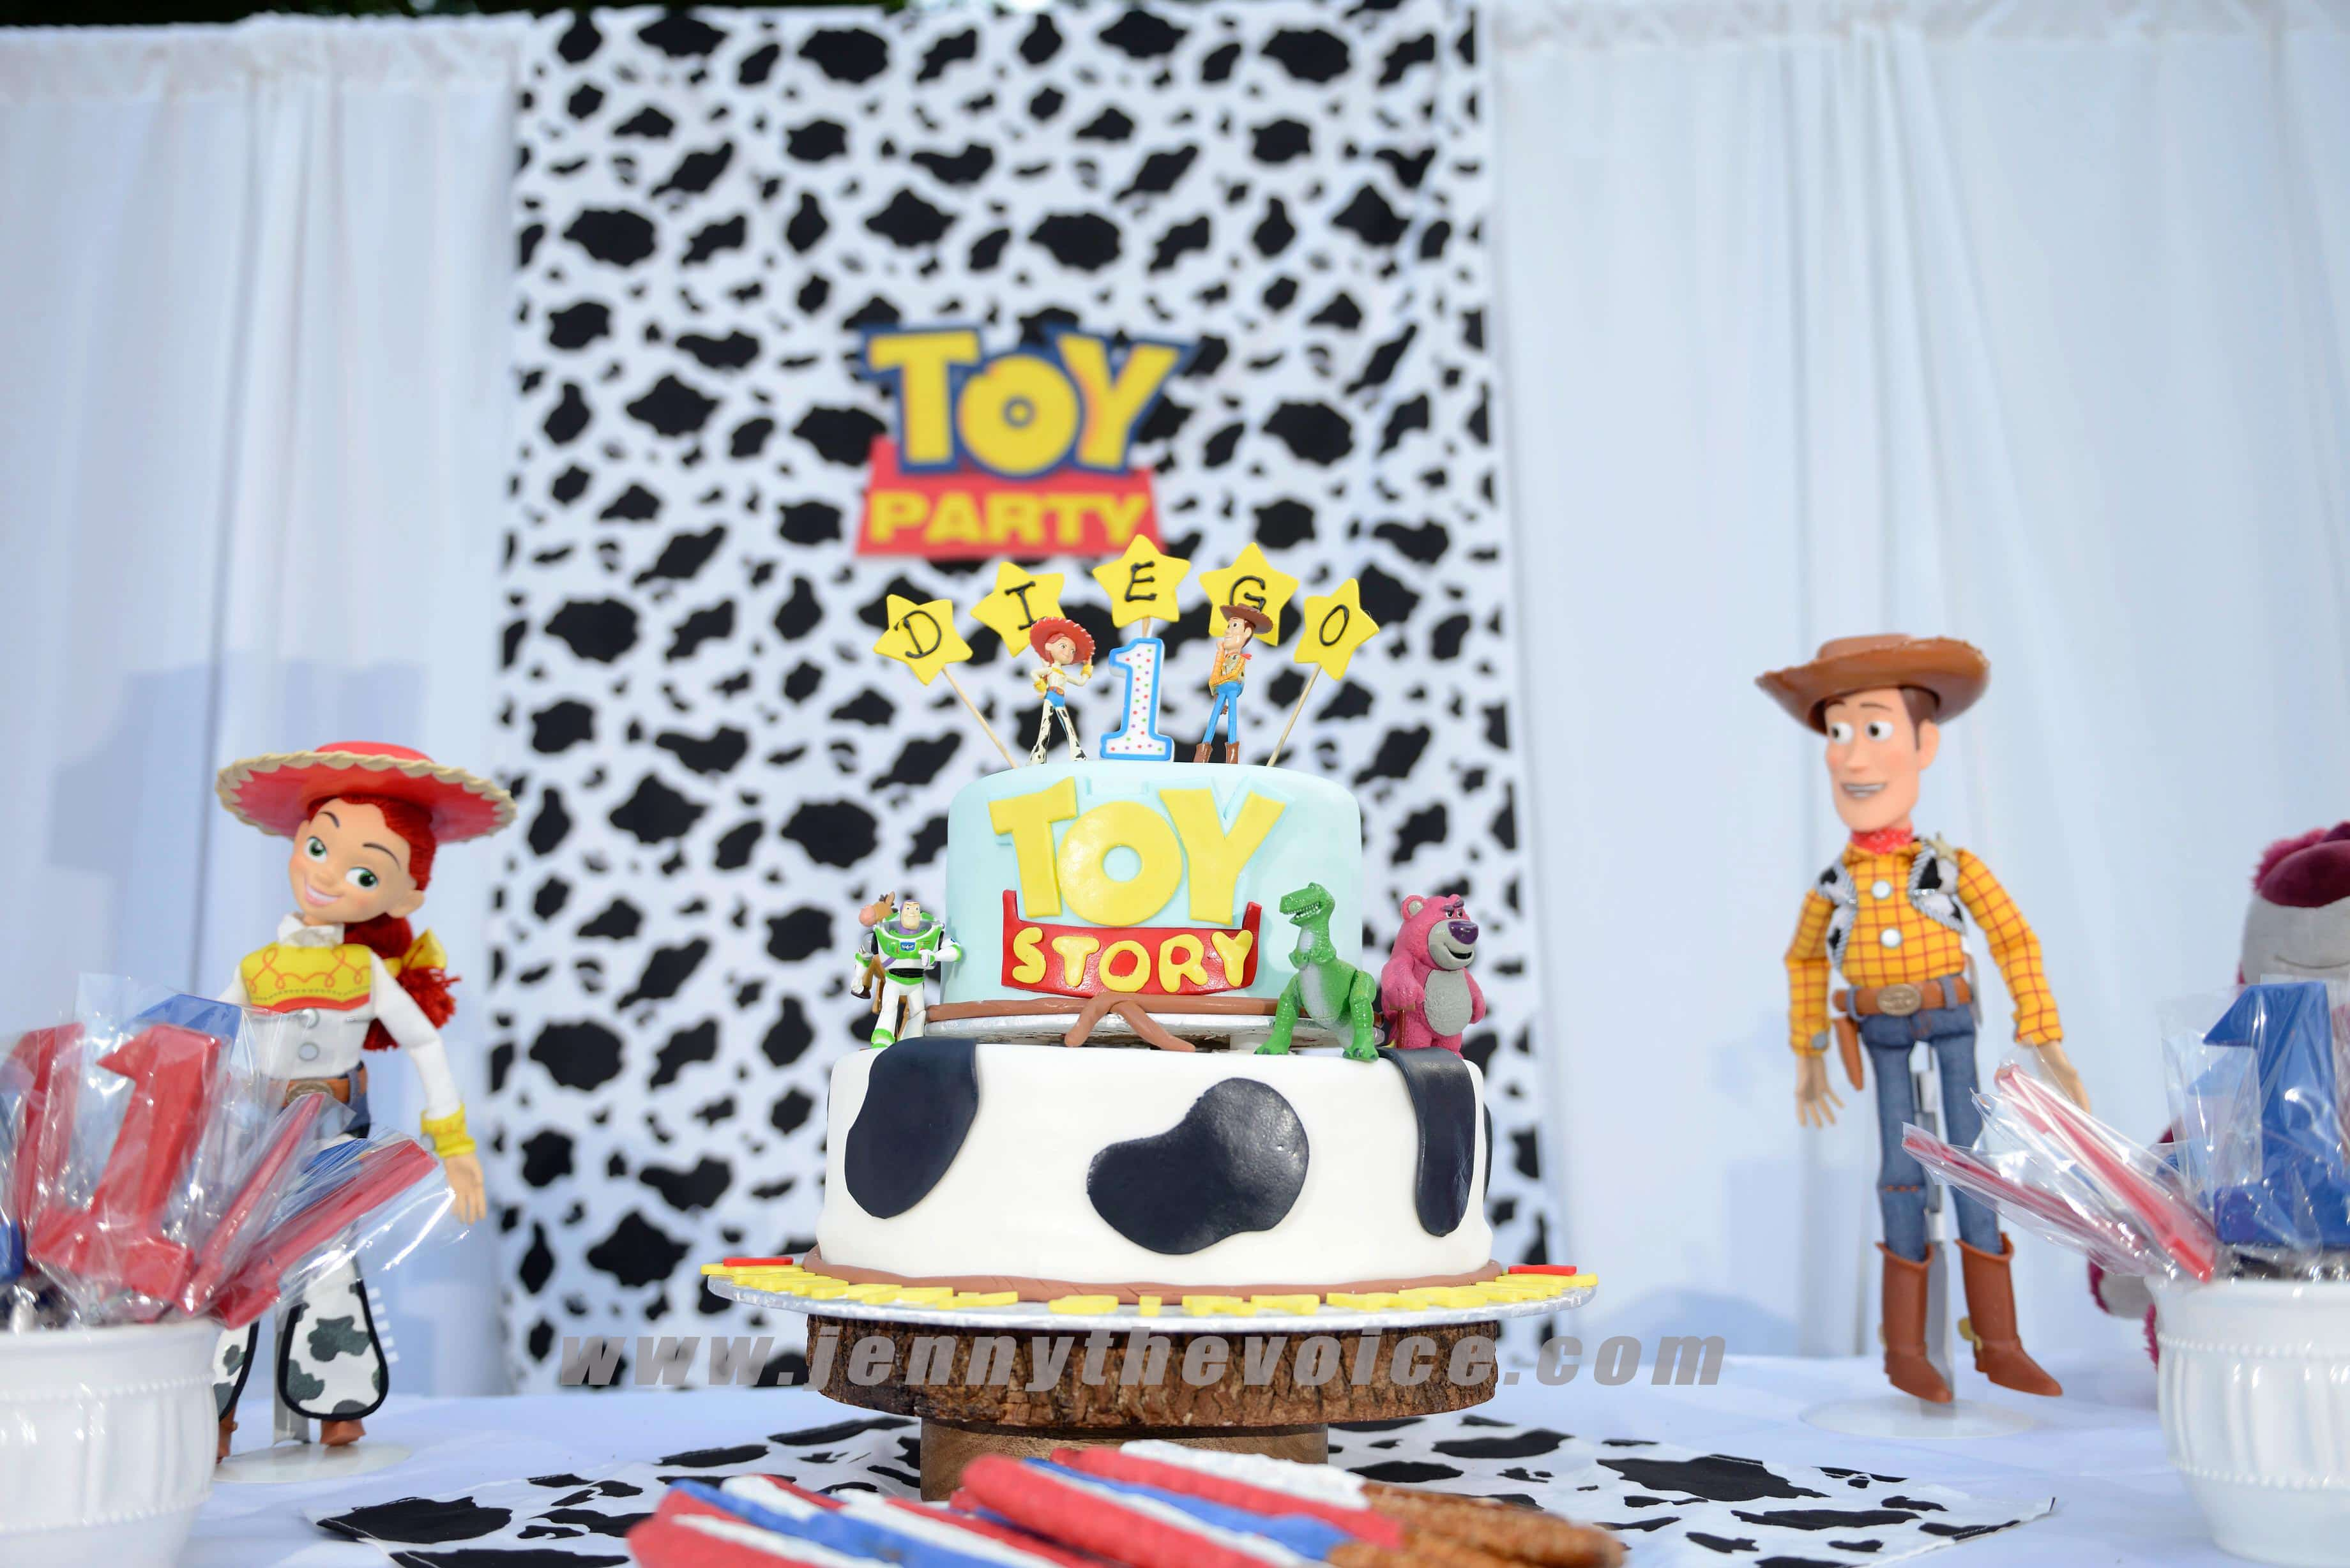 Toy-Story-birthday-party-ideas-toy-story-land